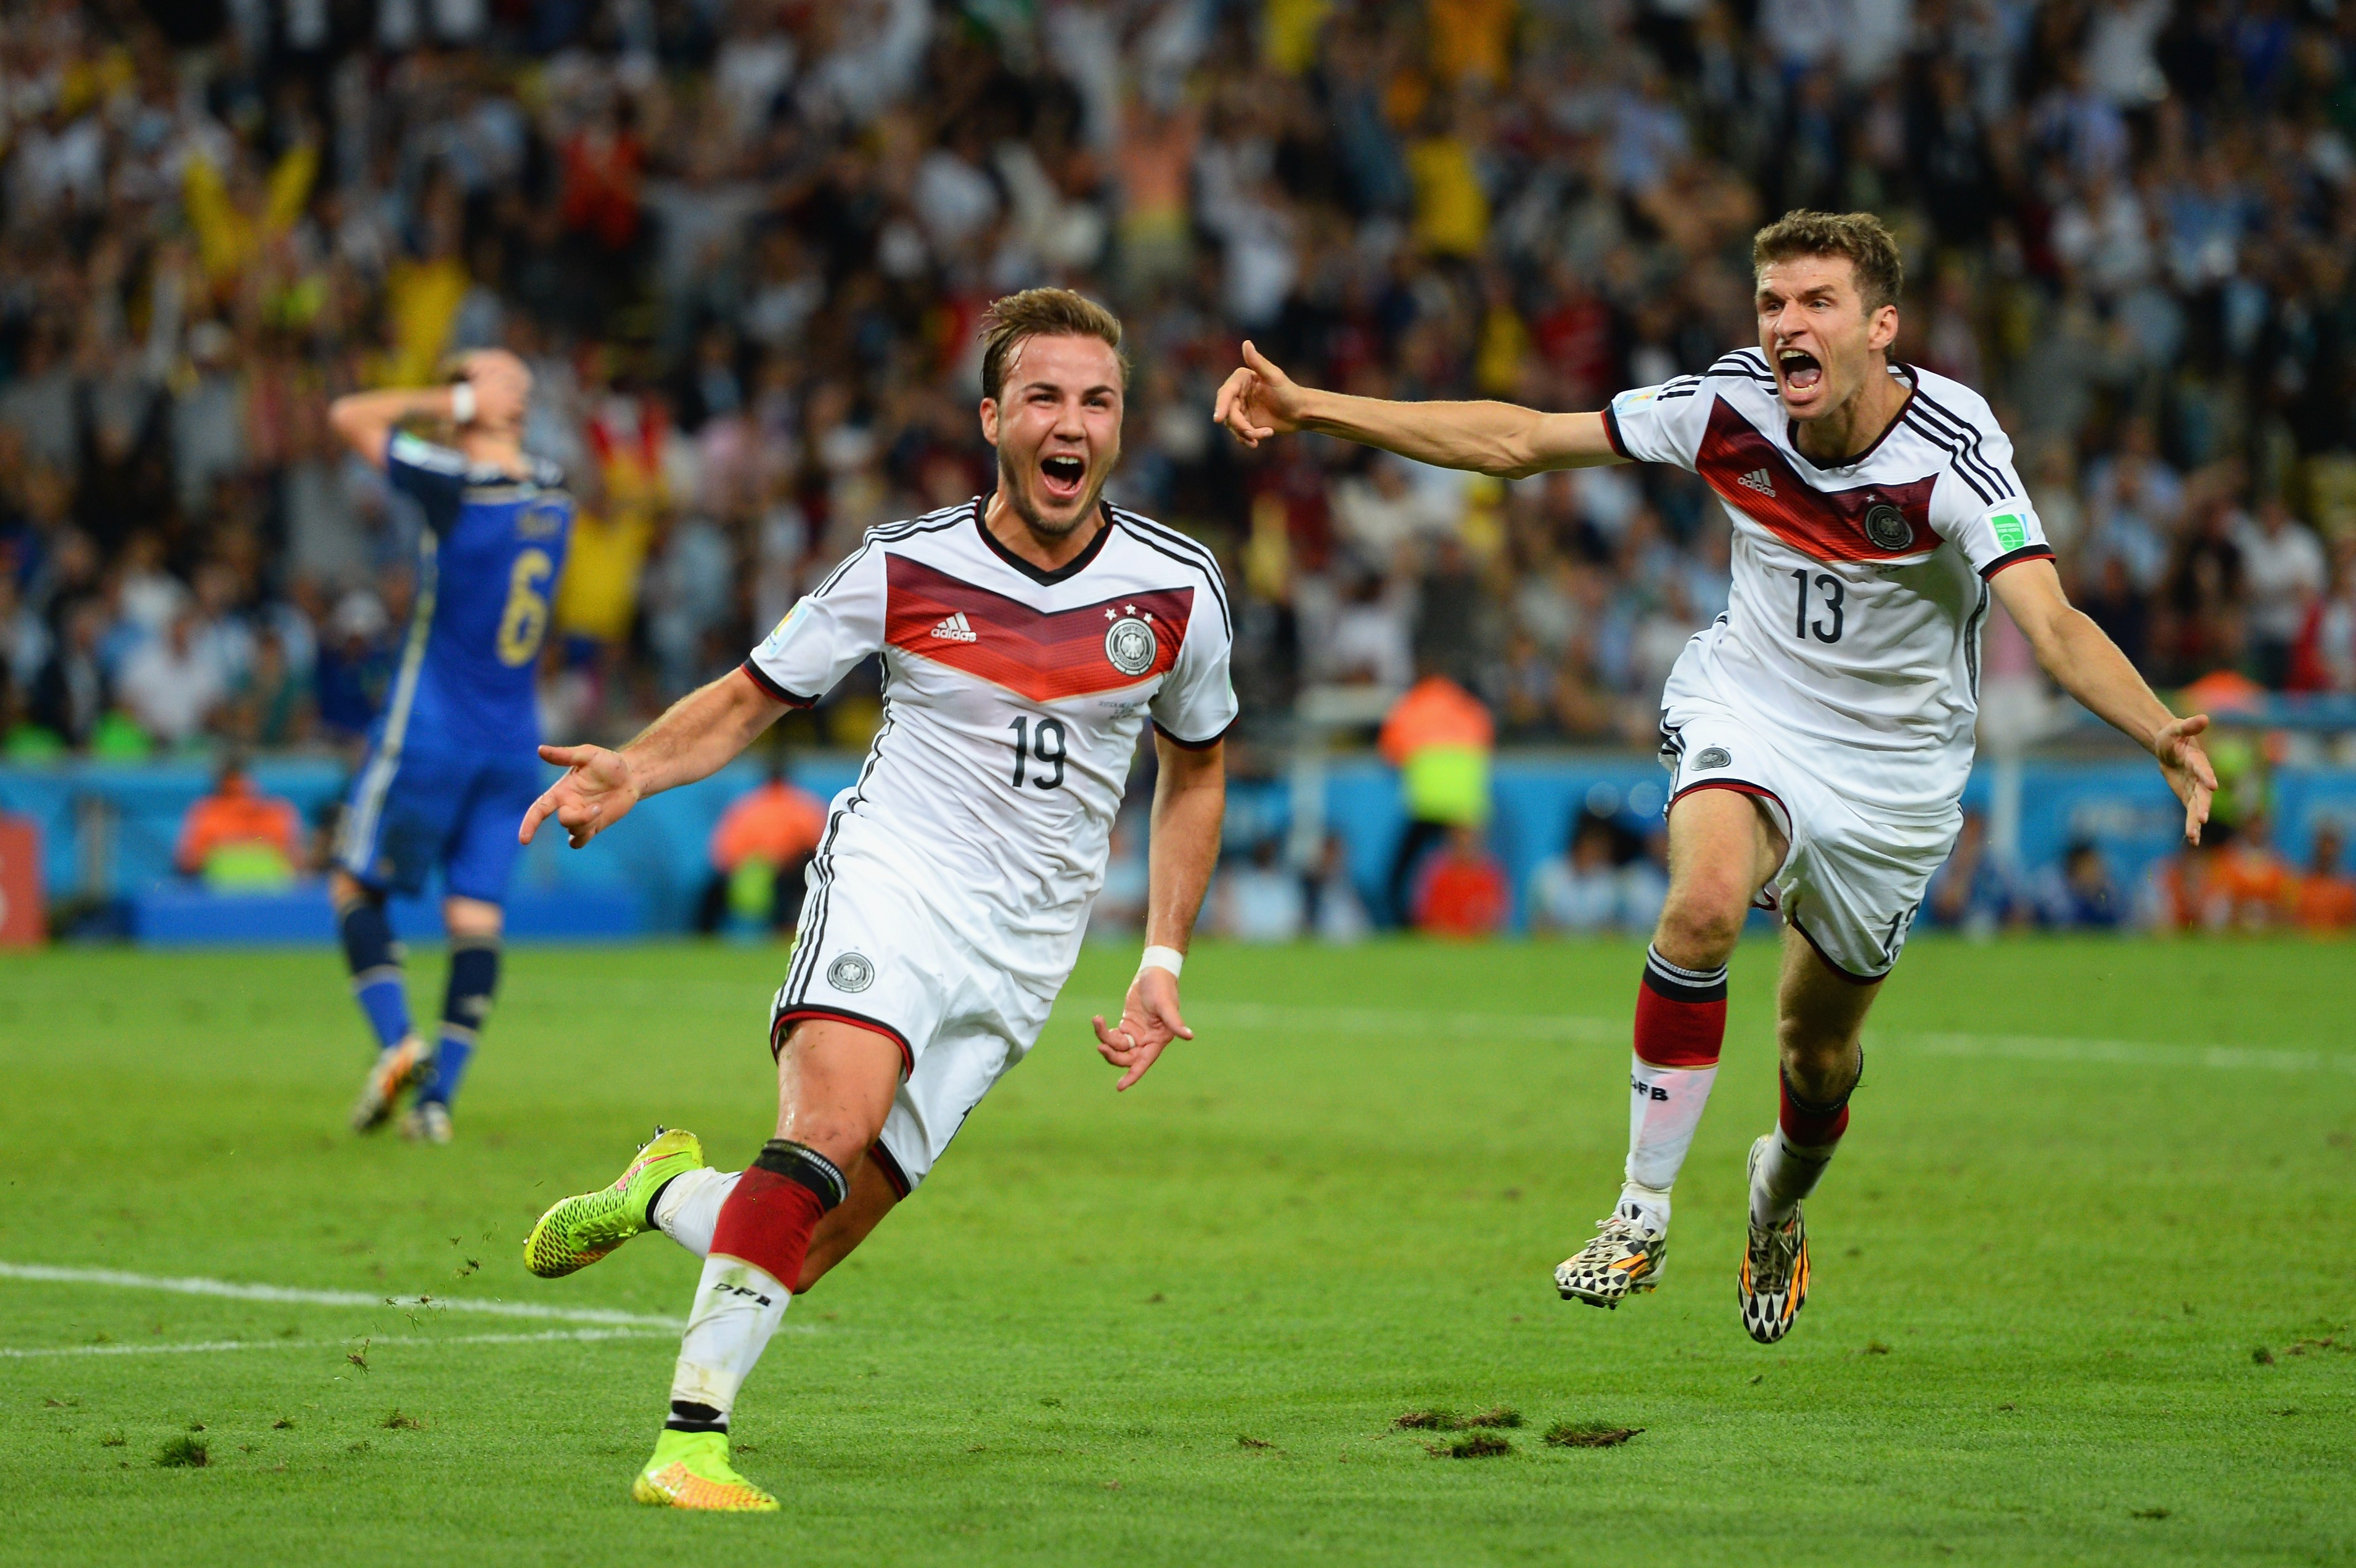 Gotze was on top of his game and his World Cup Winning goal in 2014 hilighted that fact. (Photo courtesy: AFP/Getty)